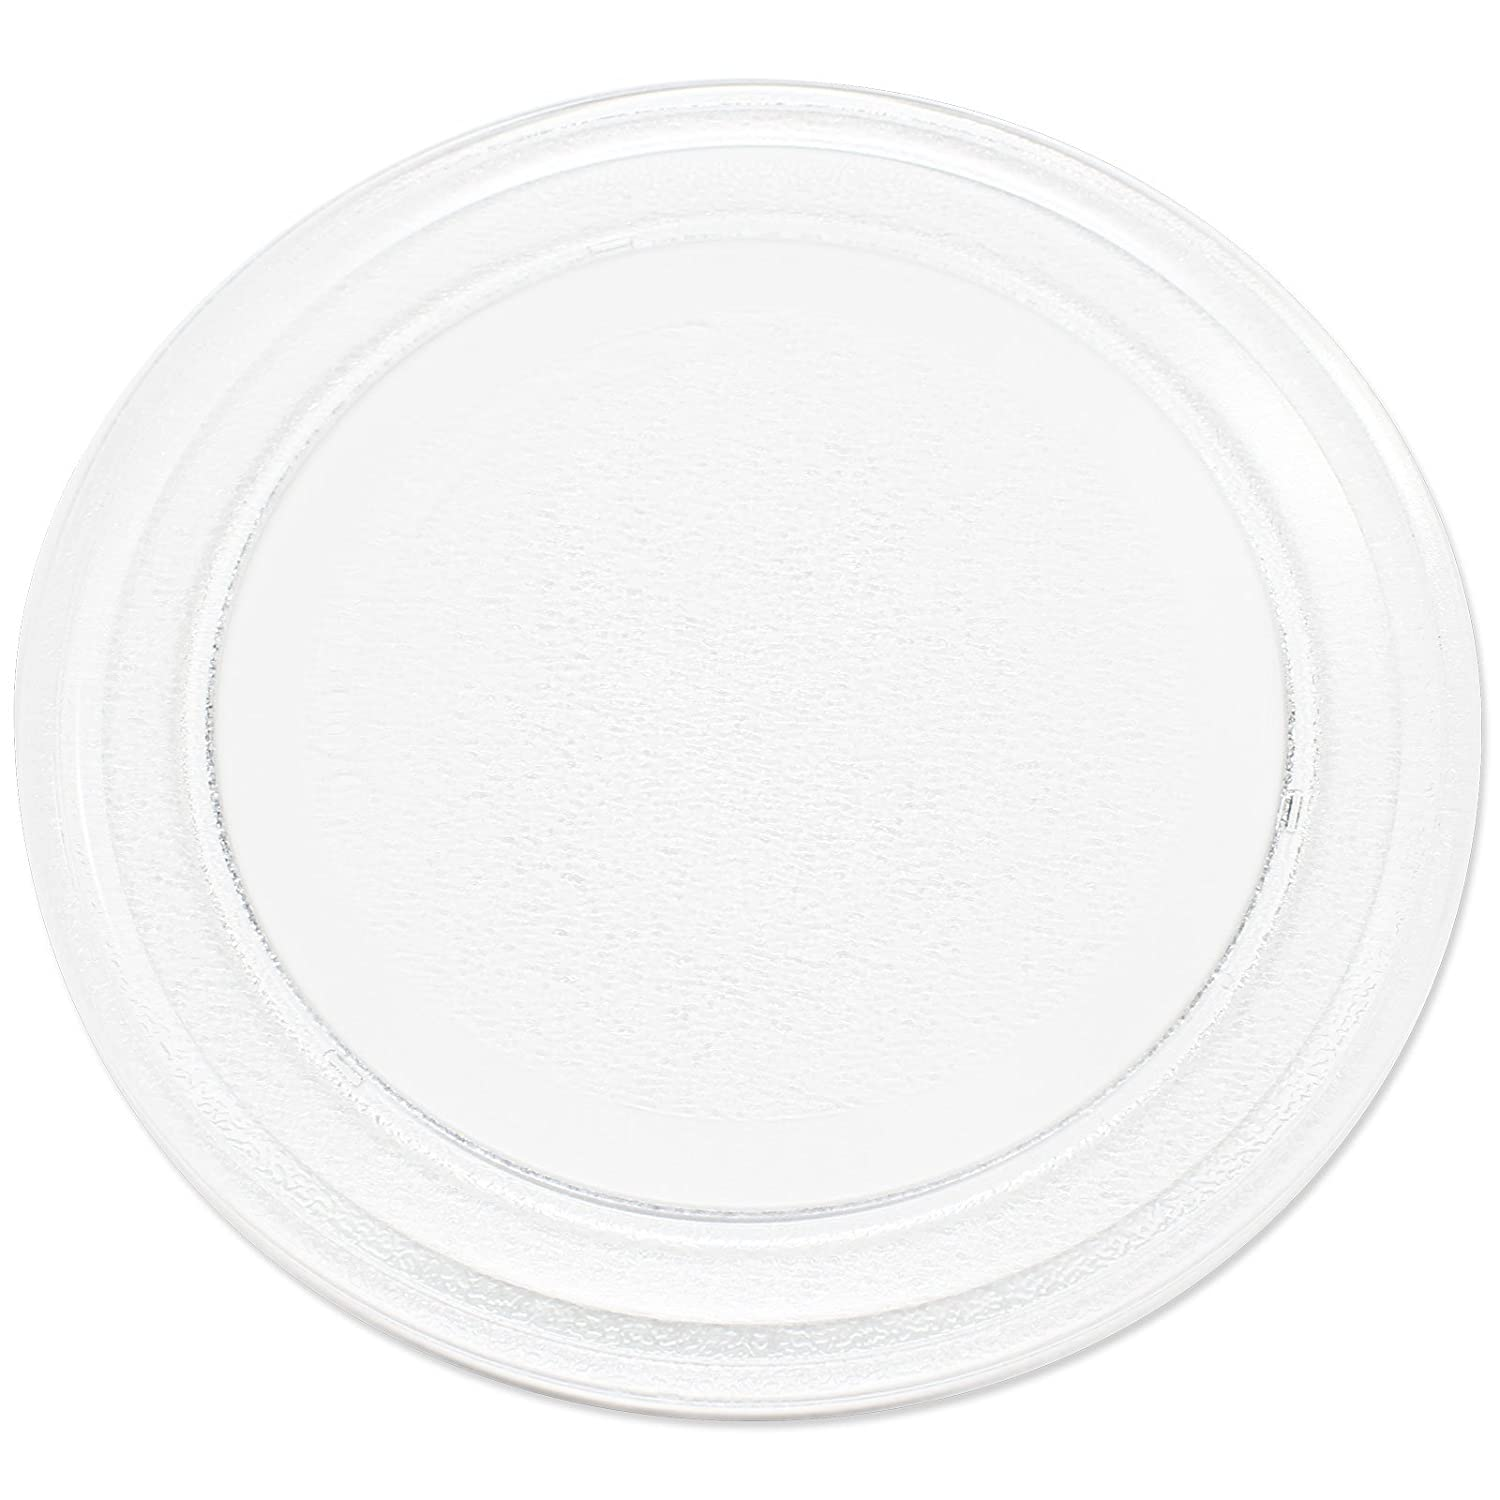 "Microwave Glass Plate Replacement for Oster, Emerson, Sunbeam, Haier, Rival, RCA, Panasonic, LG - Compatible with Oster OGG3701, Emerson MW8781SB, Sunbeam SM0701A7E, Oster OGYU701 - 9 5/8"" (245 mm)"